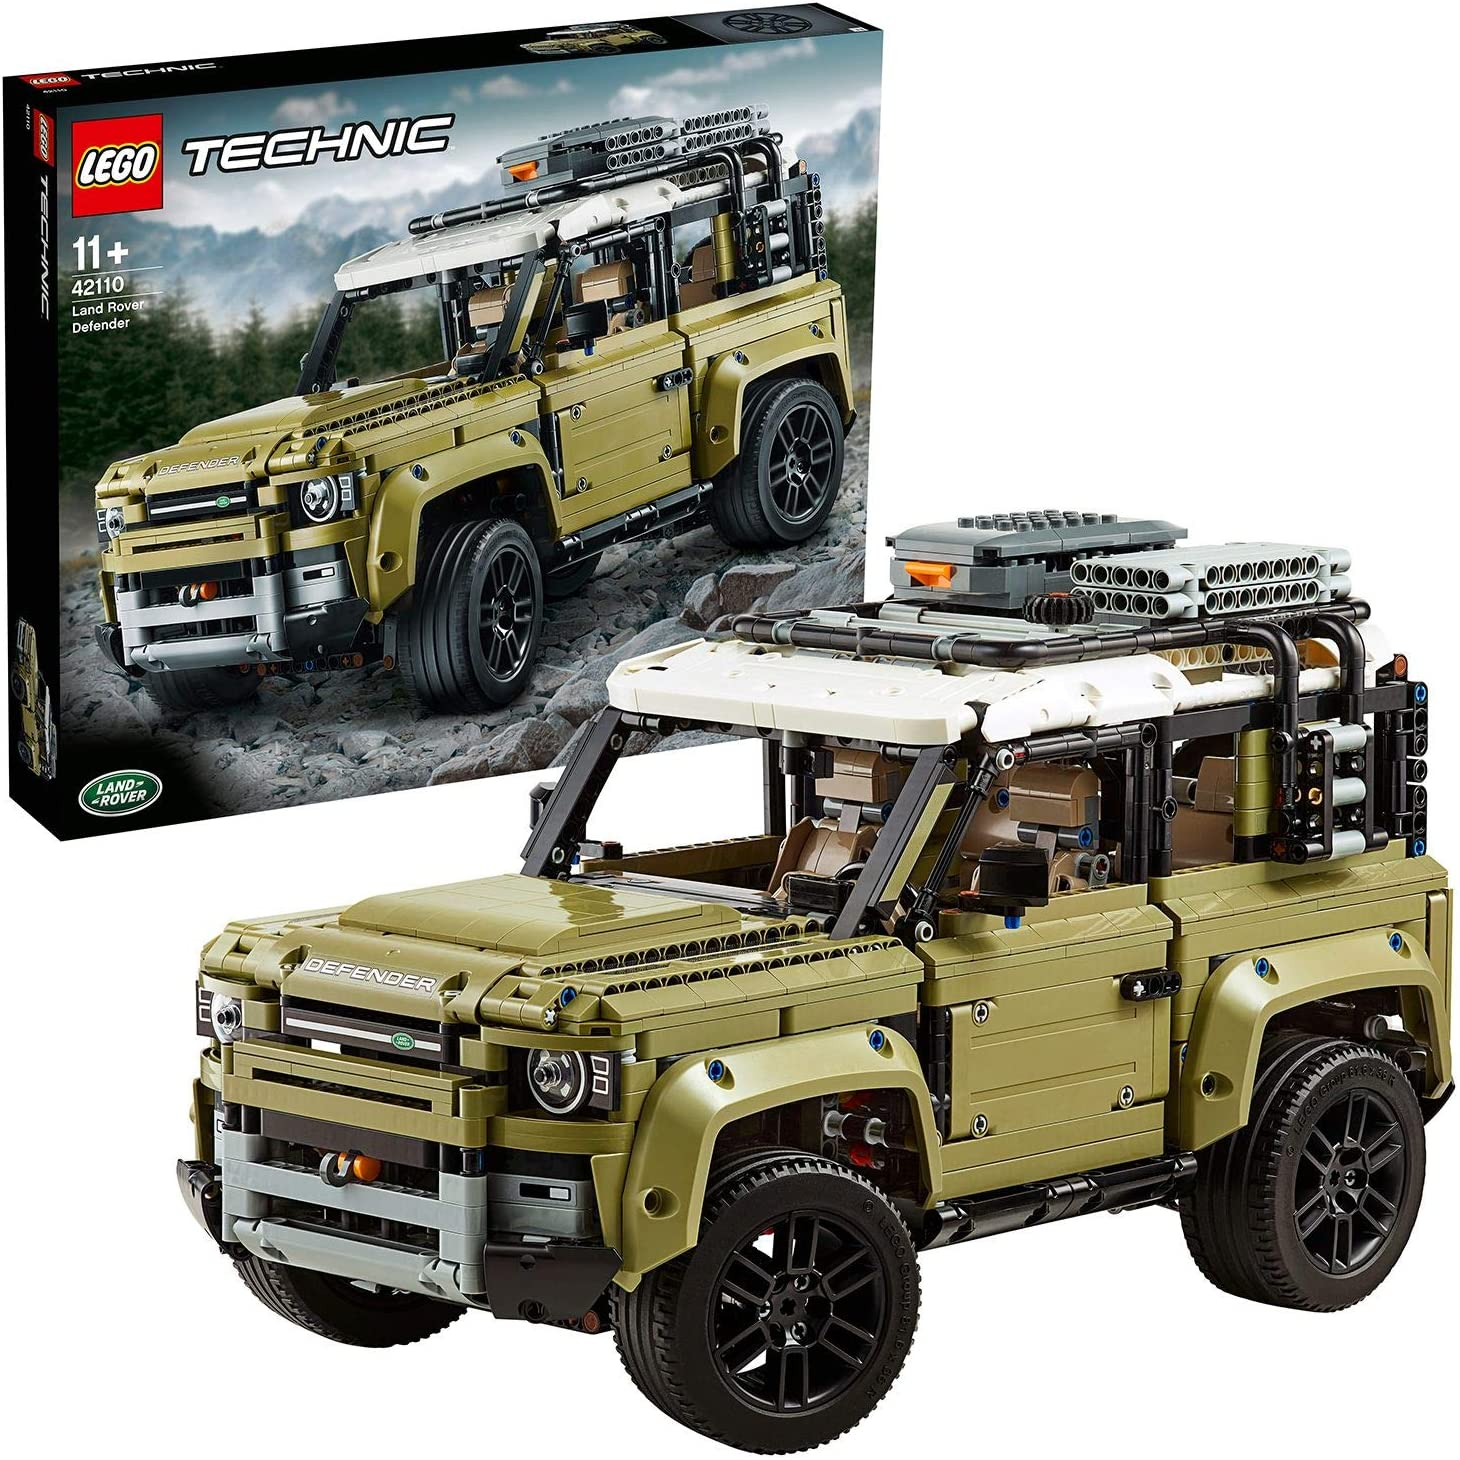 LEGO 42110 Technic Land Rover Defender Off Road 4x4 Car, Exclusive Collectible Model, Enhanced Building Set: Toys & Games